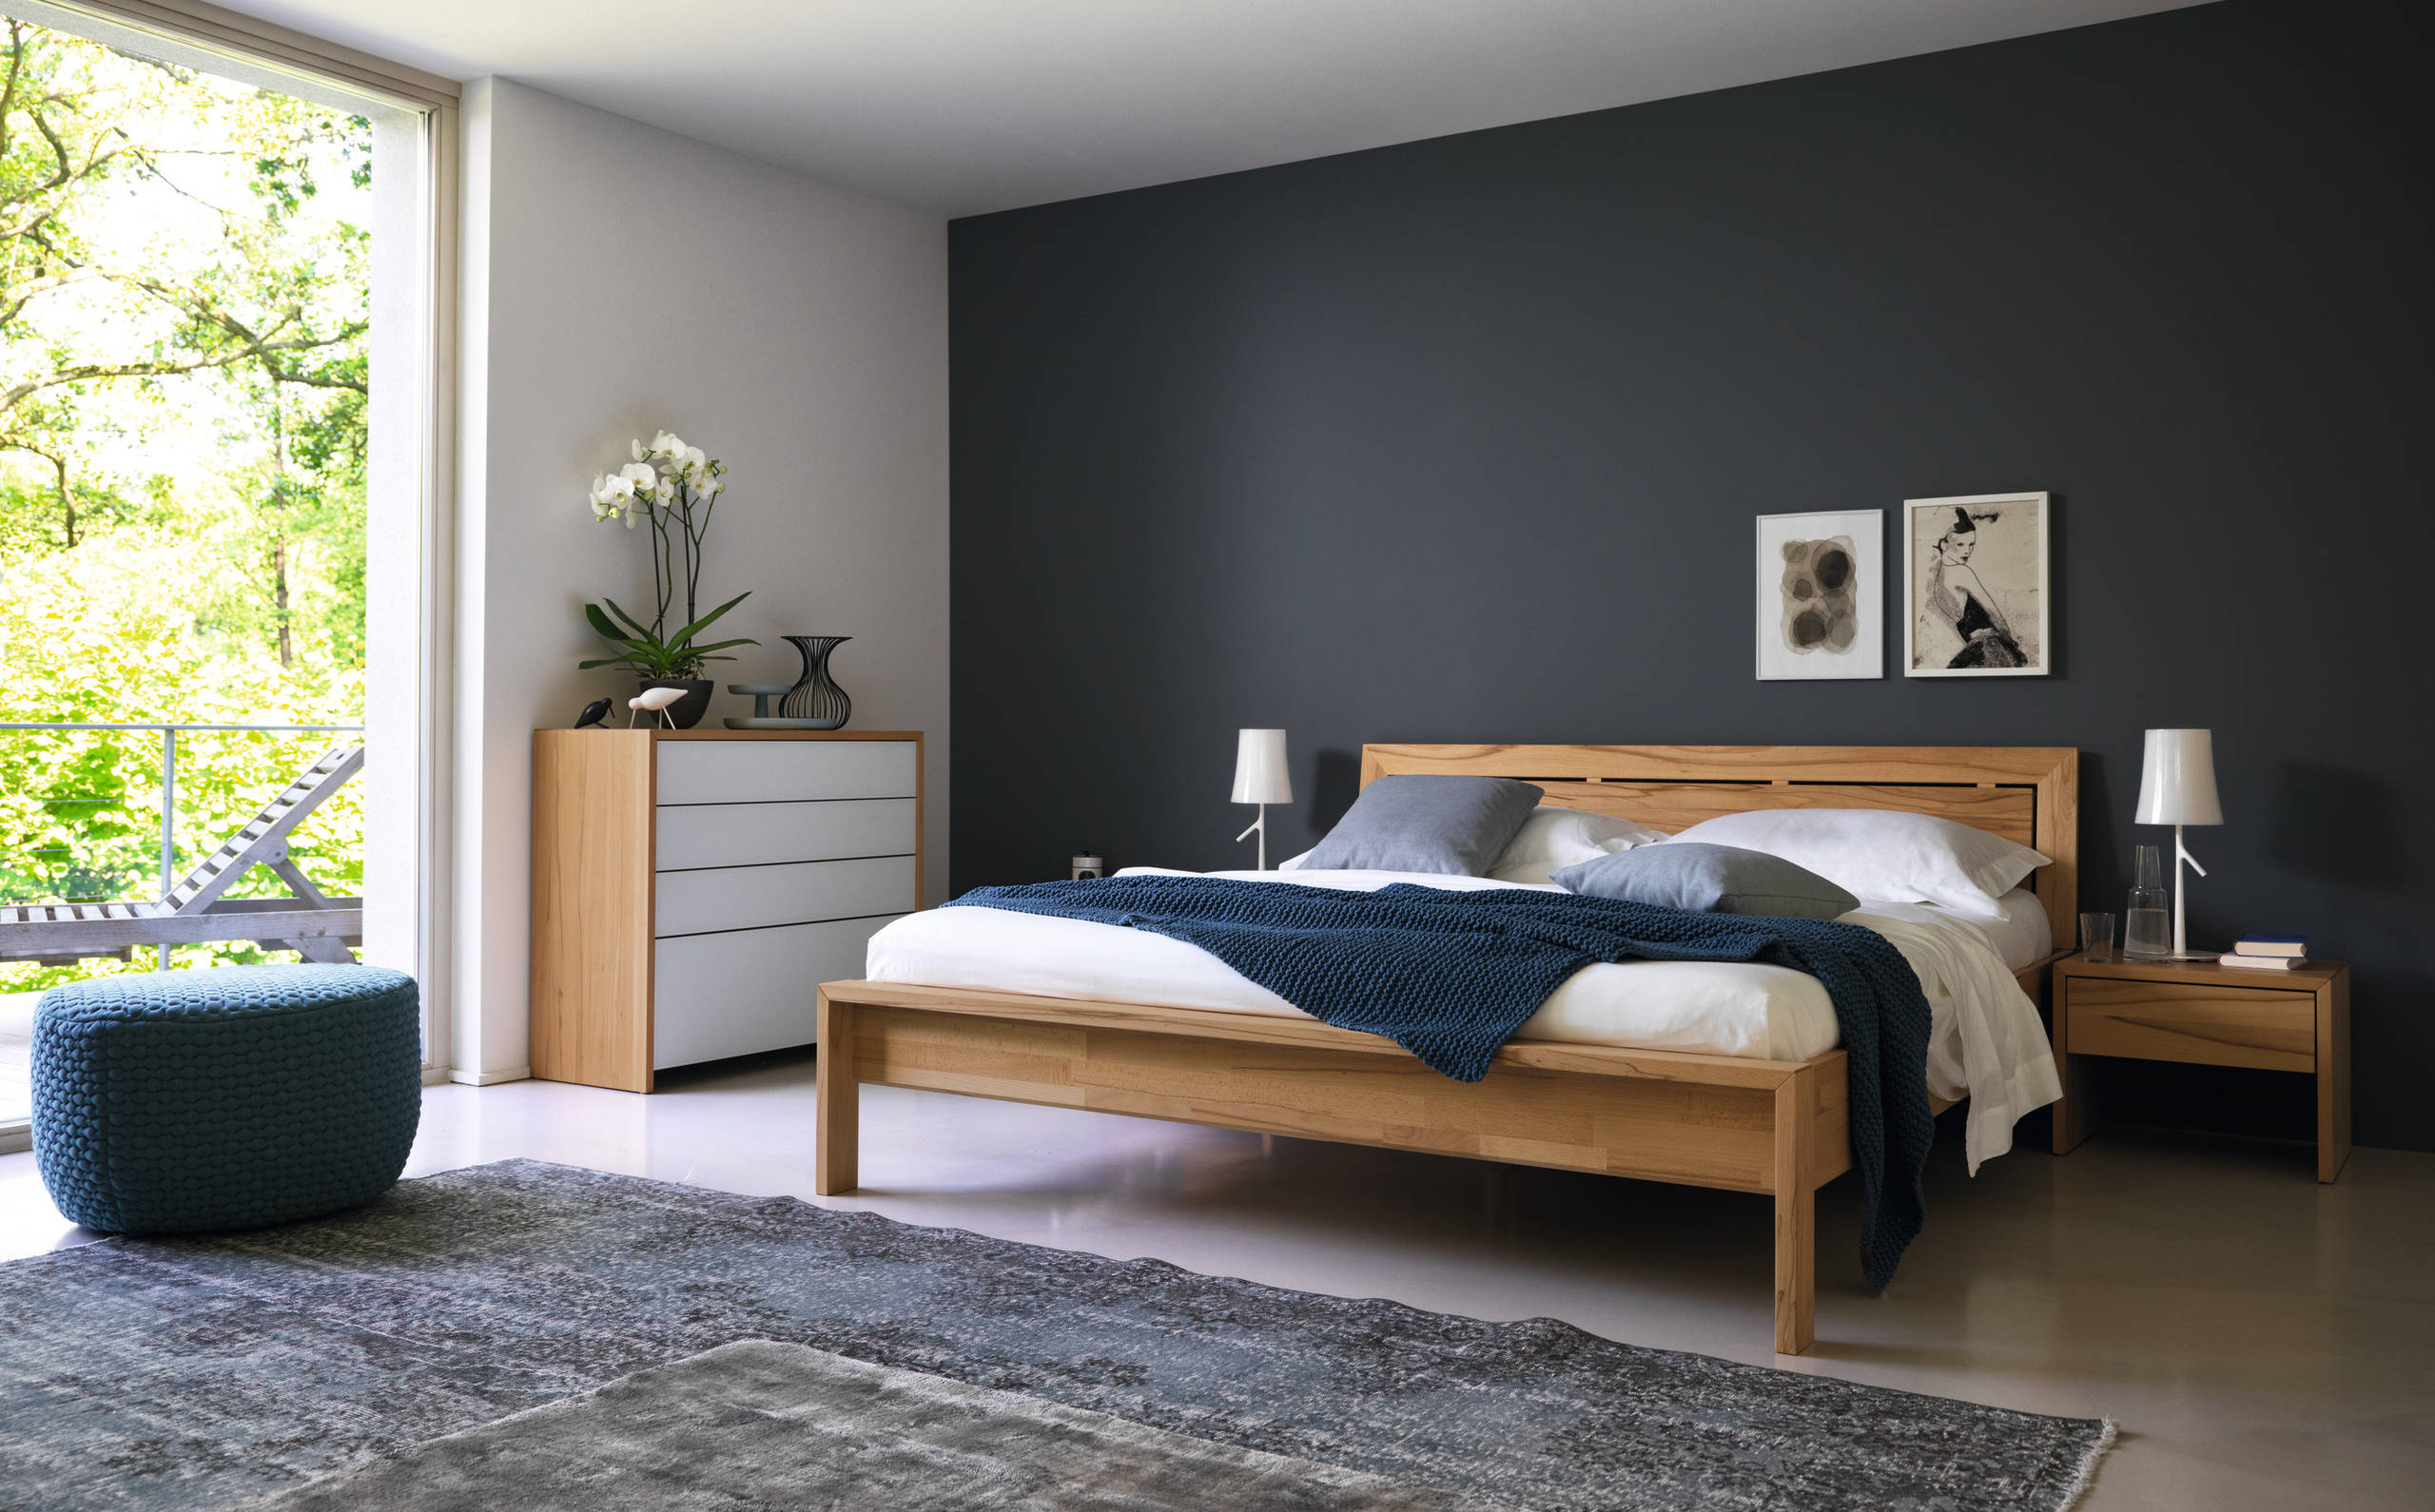 Naturholzbetten 75 Beautiful Concrete Floor Bedroom With Black Walls Pictures & Ideas - May, 2021 | Houzz